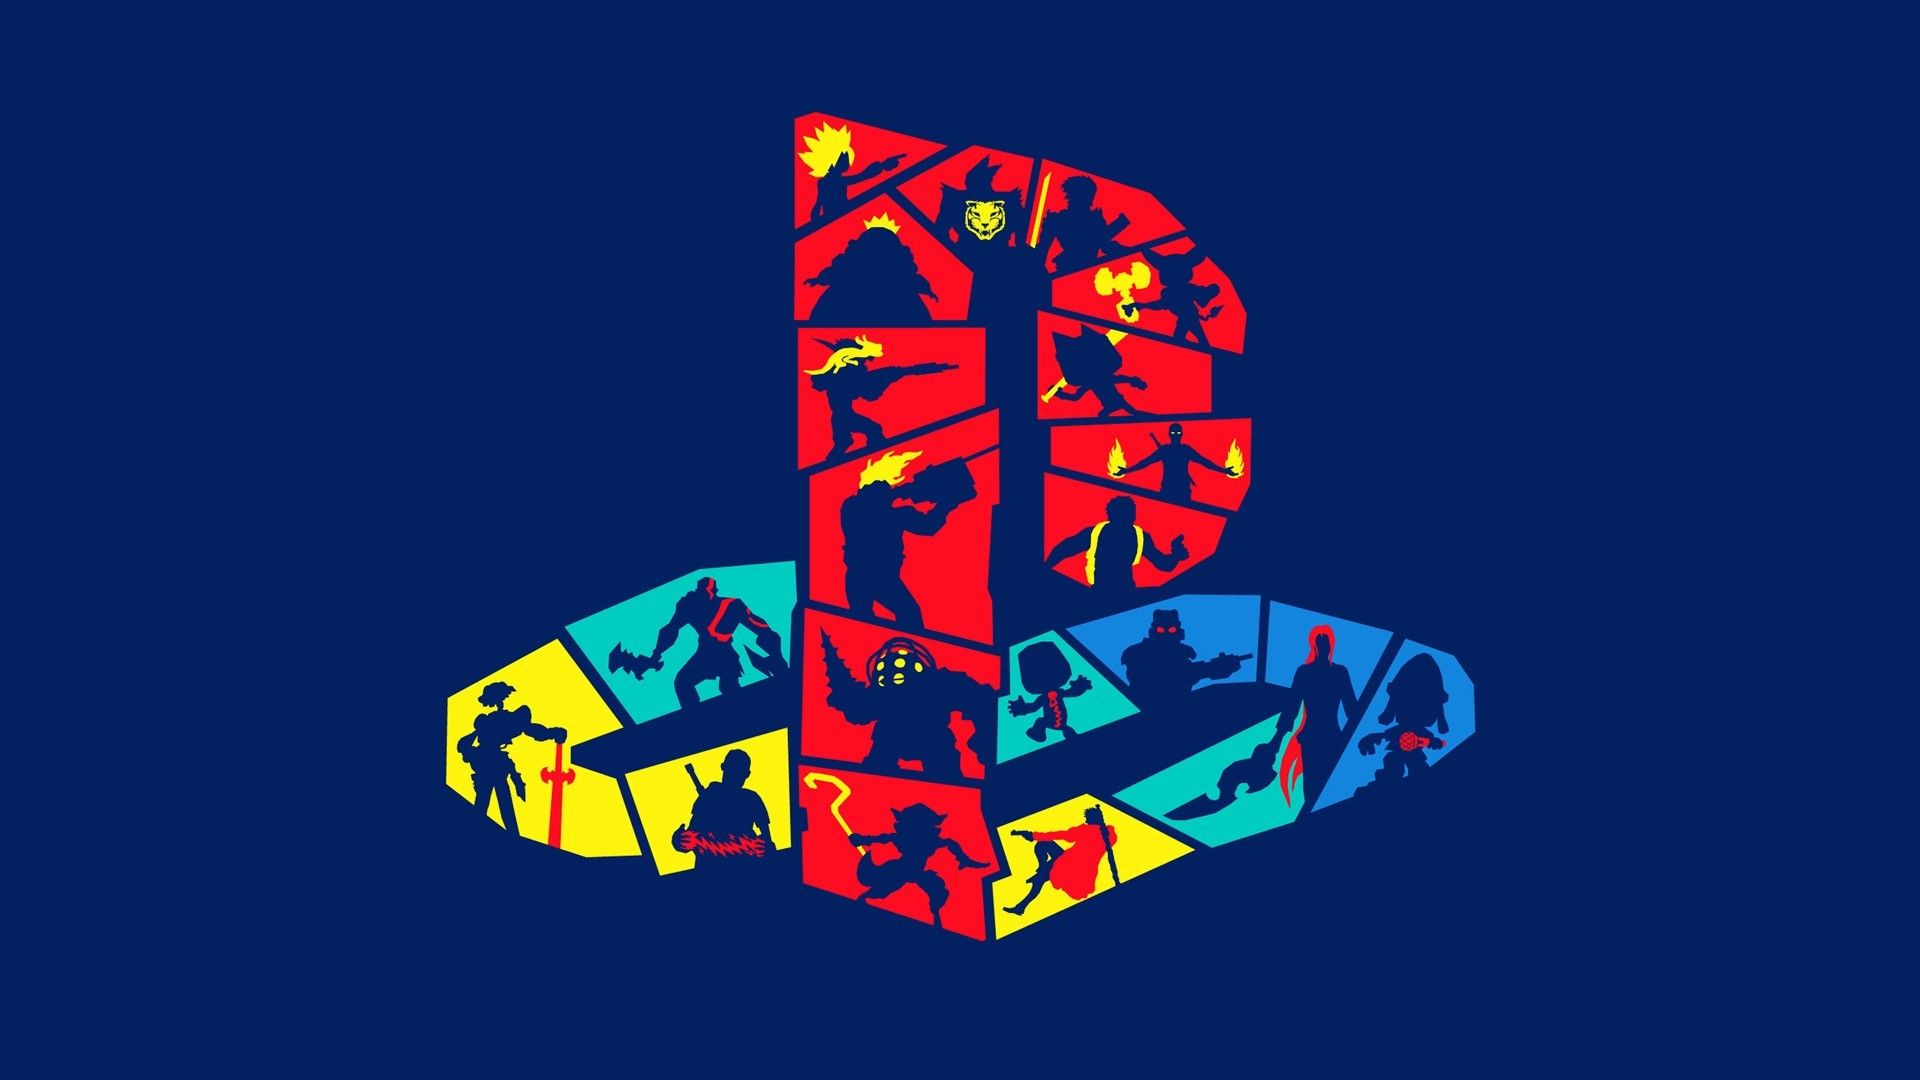 1920x1080 Funky Playstation Logo Wallpaper for Desktop and Mobiles ...